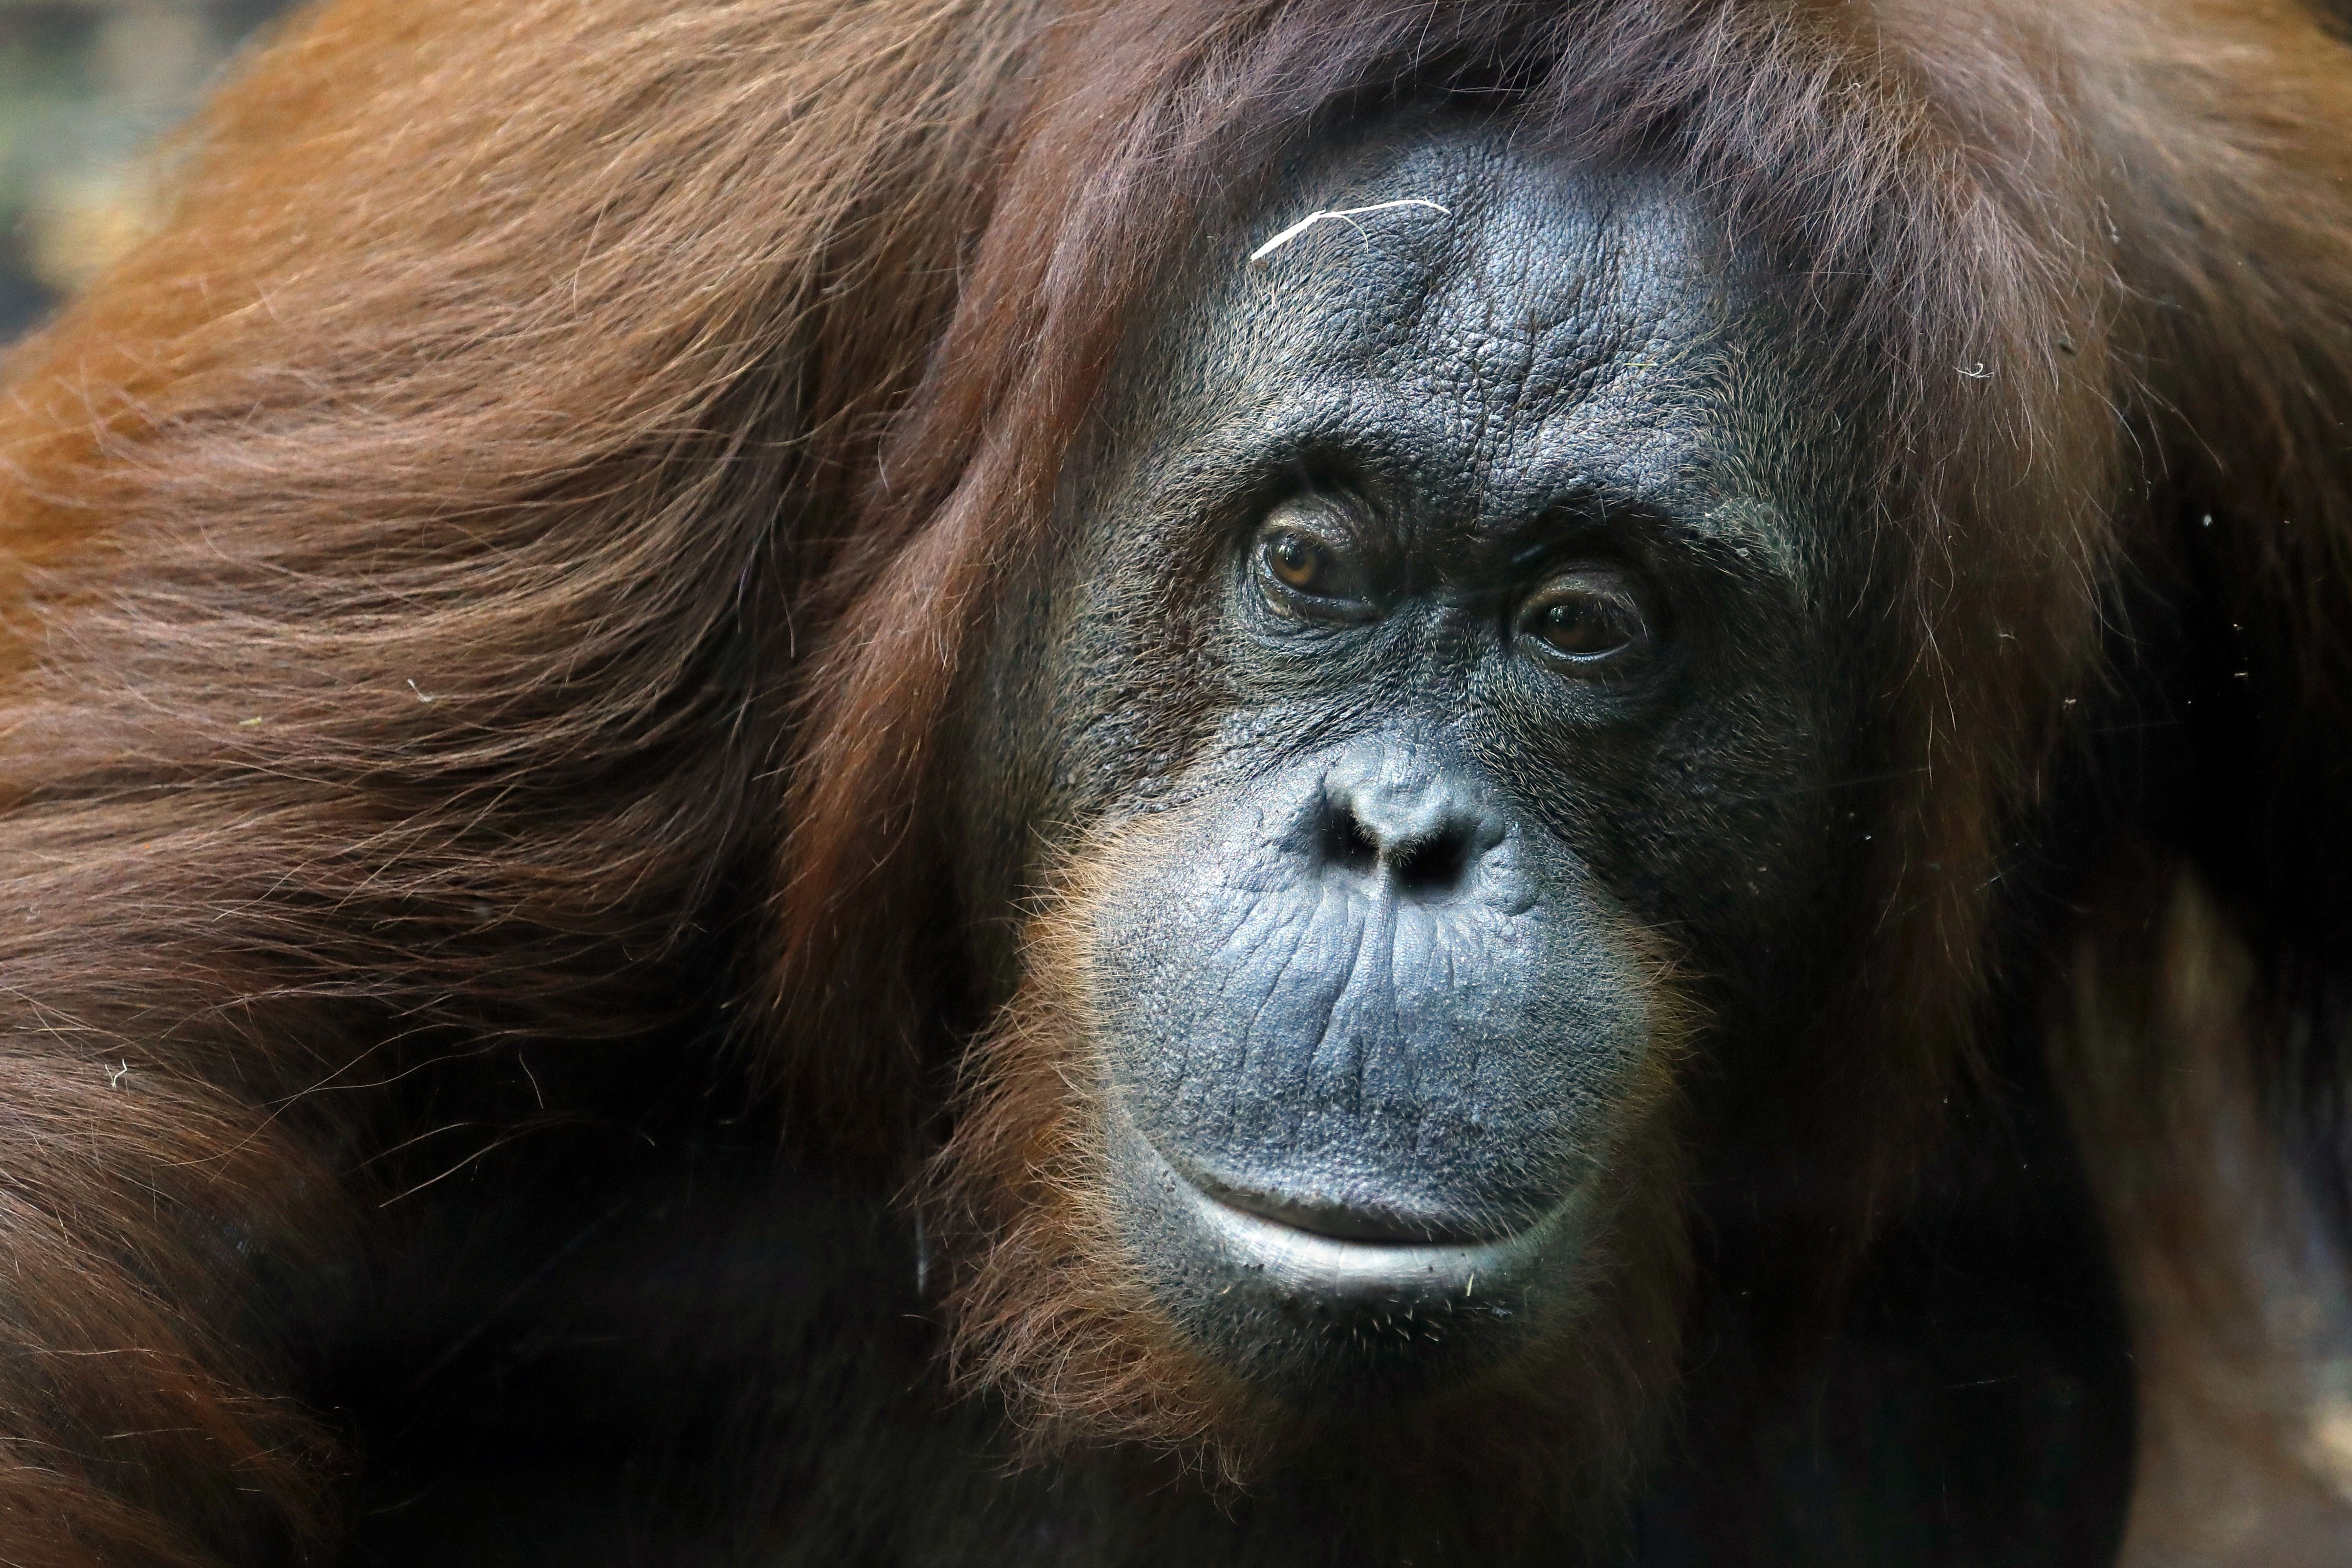 """nice Dating - Orangutan to Preview Potential Mates With """"Tinder For Apes"""" at Dutch Zoo Check more at https://speeddating.tn/dating-orangutan-to-preview-potential-mates-with-tinder-for-apes-at-dutch-zoo/"""